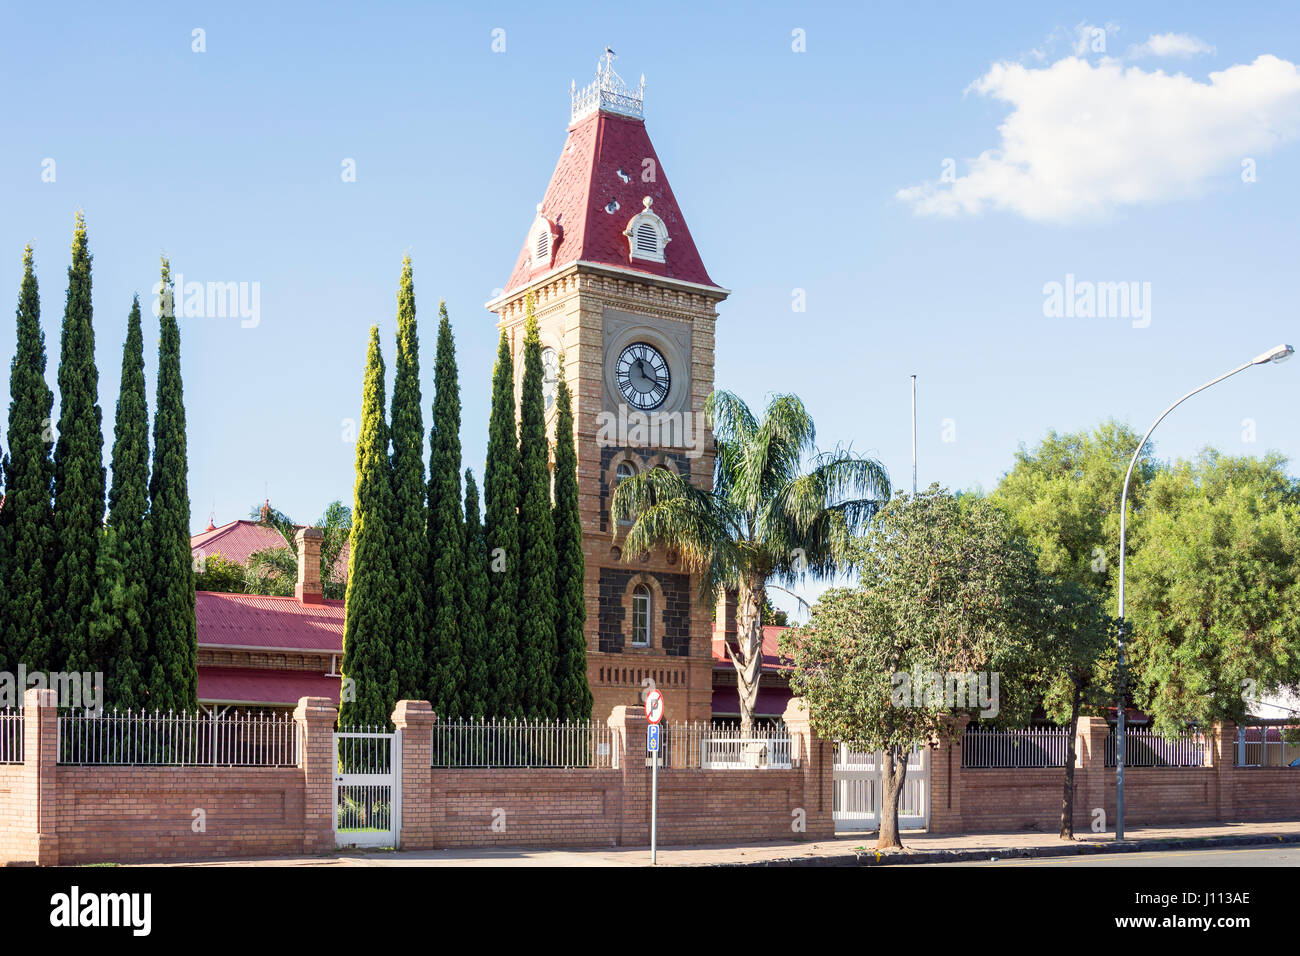 Old Magistrate Court, Market Square, Kimberley, Northern Cape Province, Republic of South Africa - Stock Image